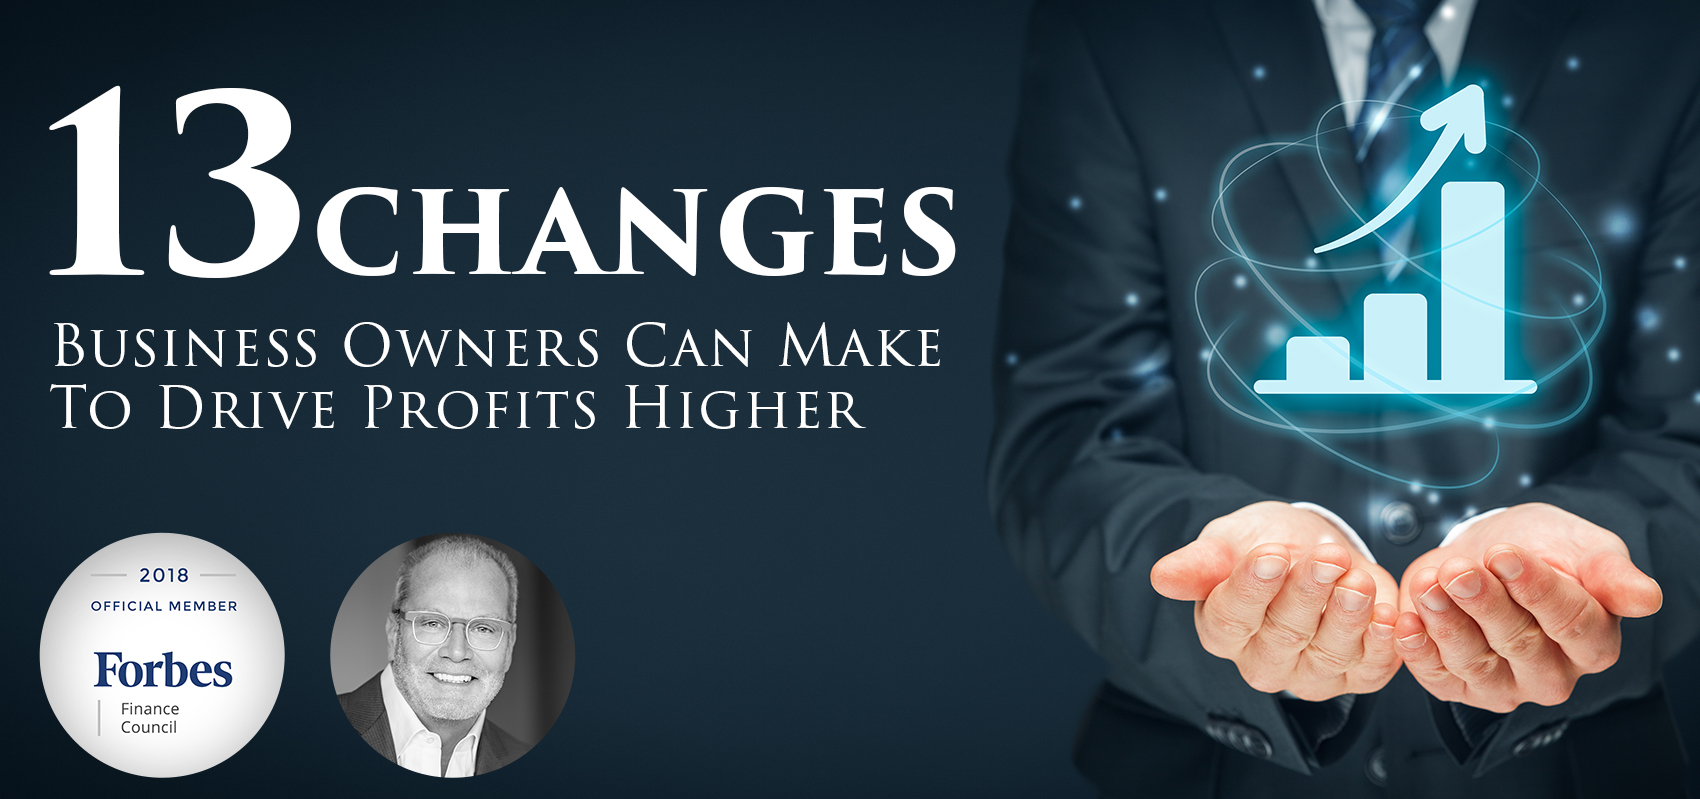 13 Changes Business Owners Can Make To Drive Profits Higher